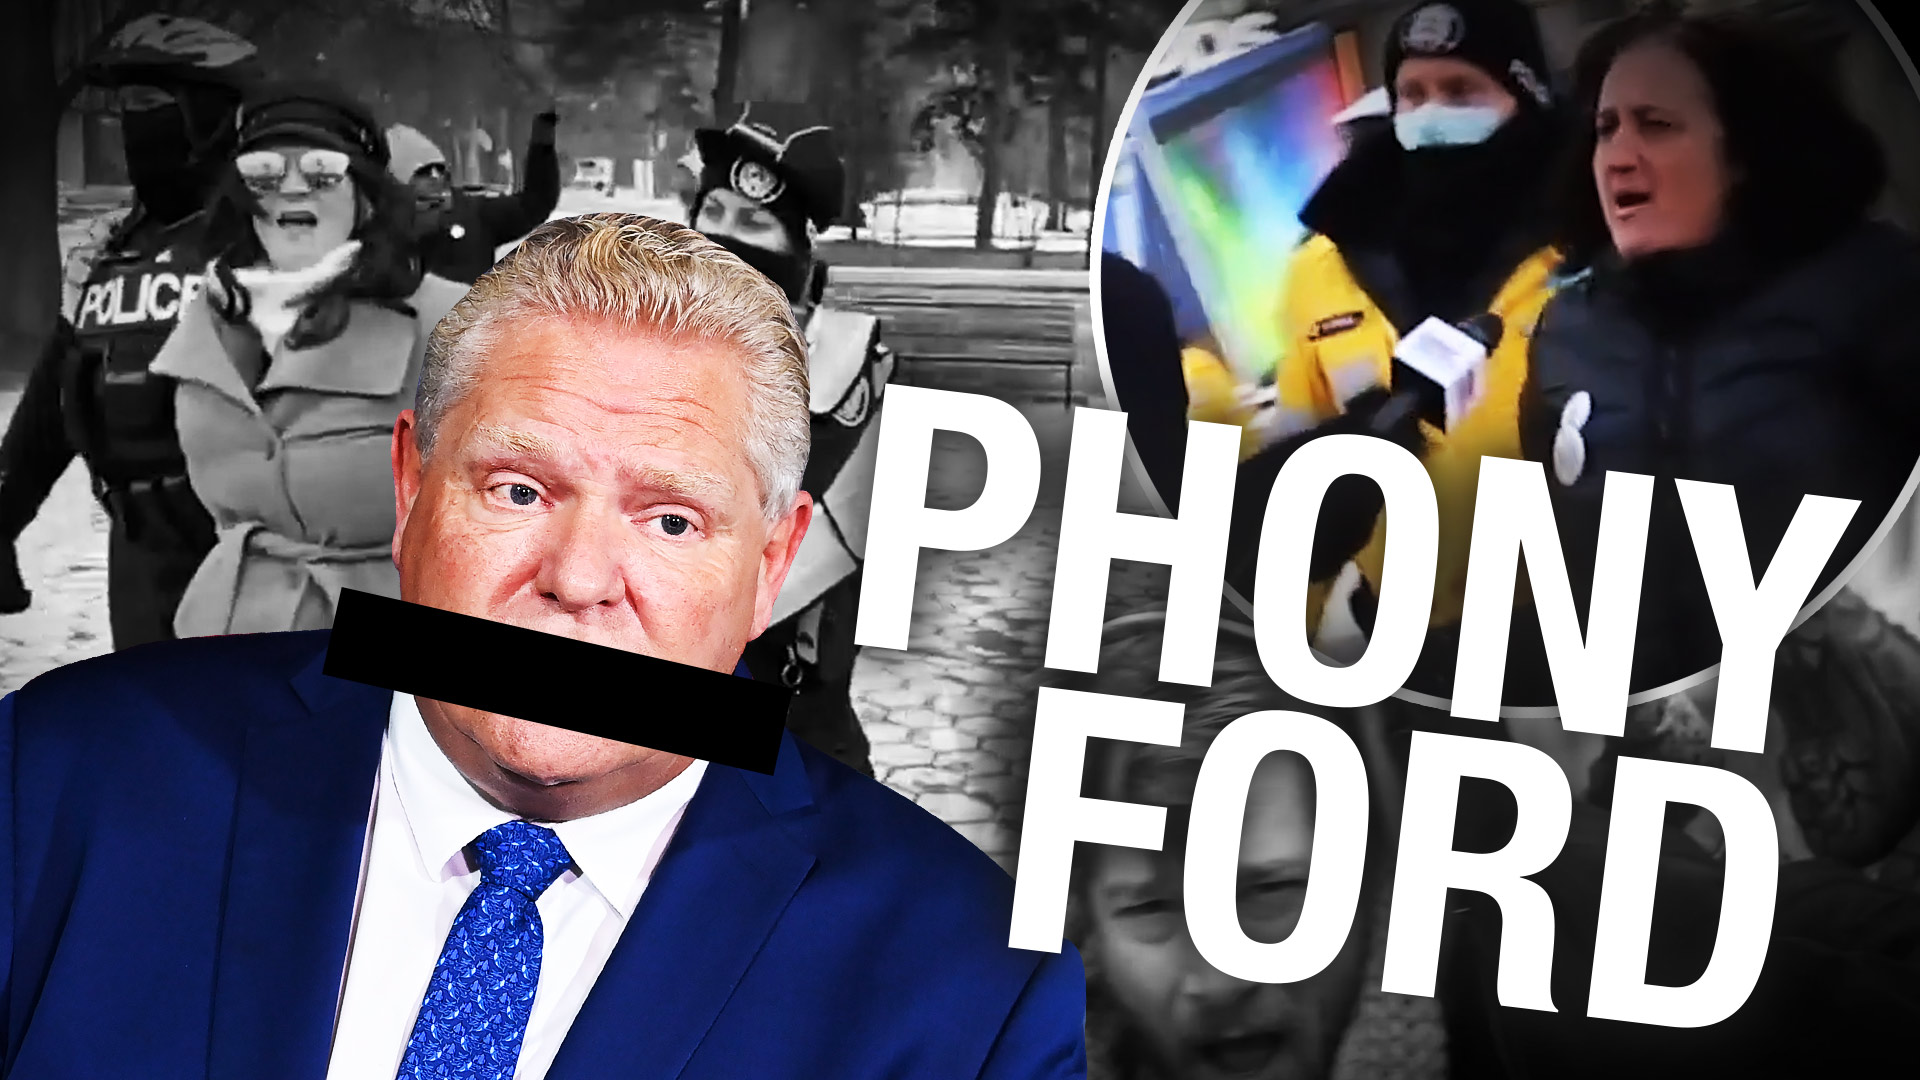 Doug Ford: For the people but also for arresting, fining, and controlling people